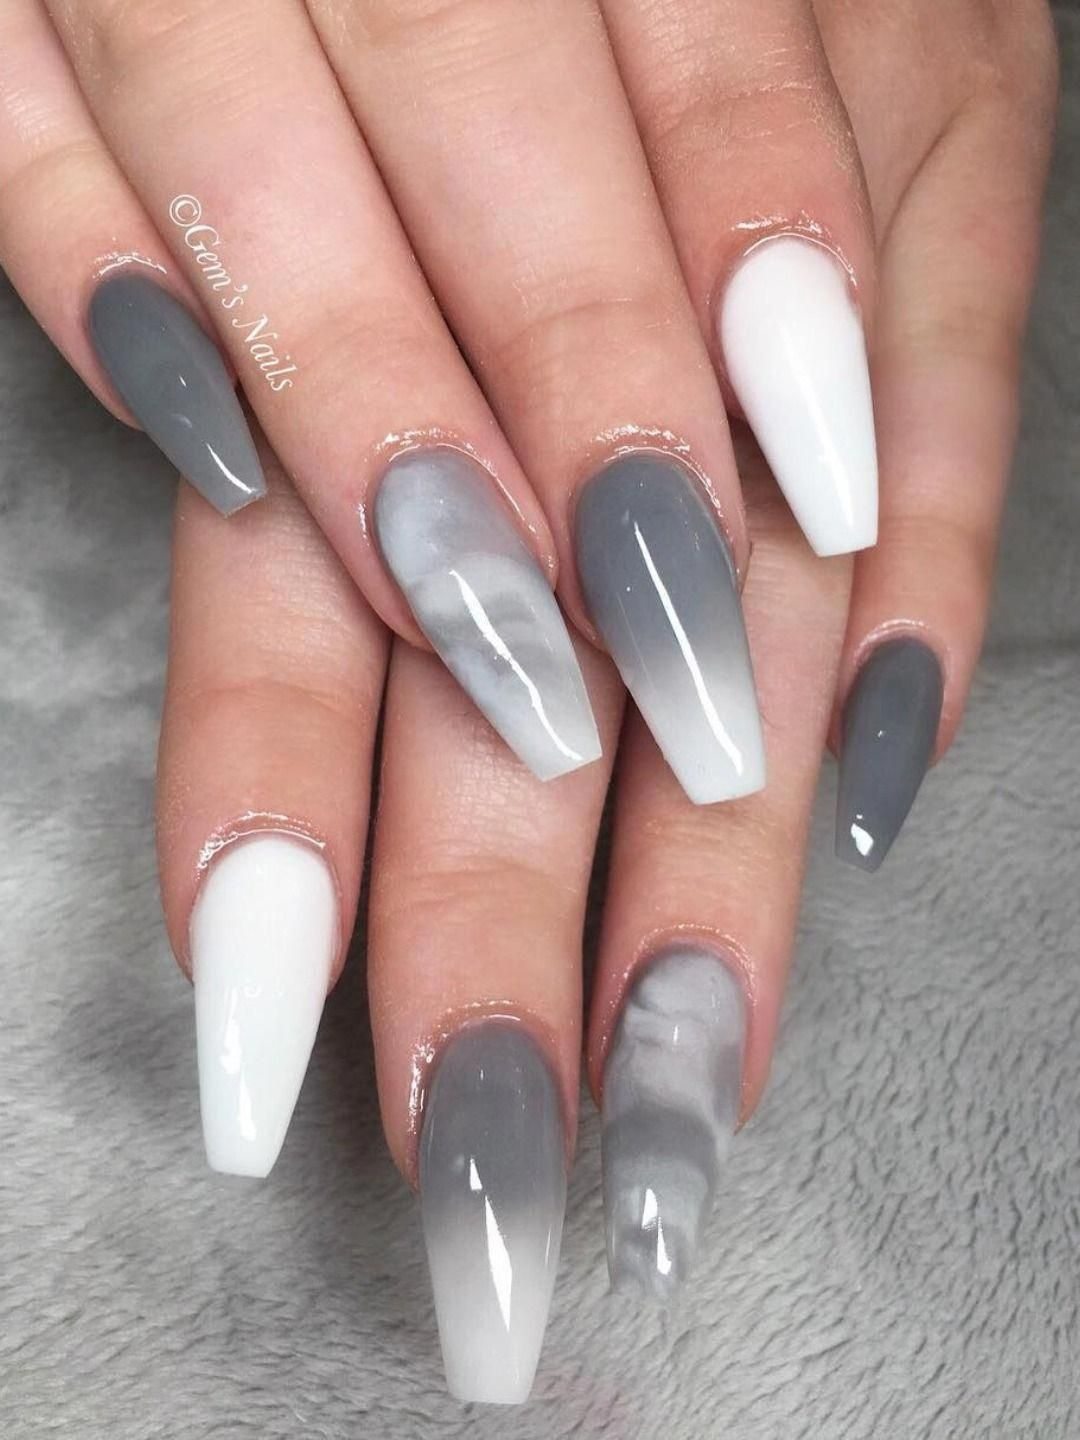 Dangerous False Nails In 2020 With Images Gelove Nehty Nehty Nehet